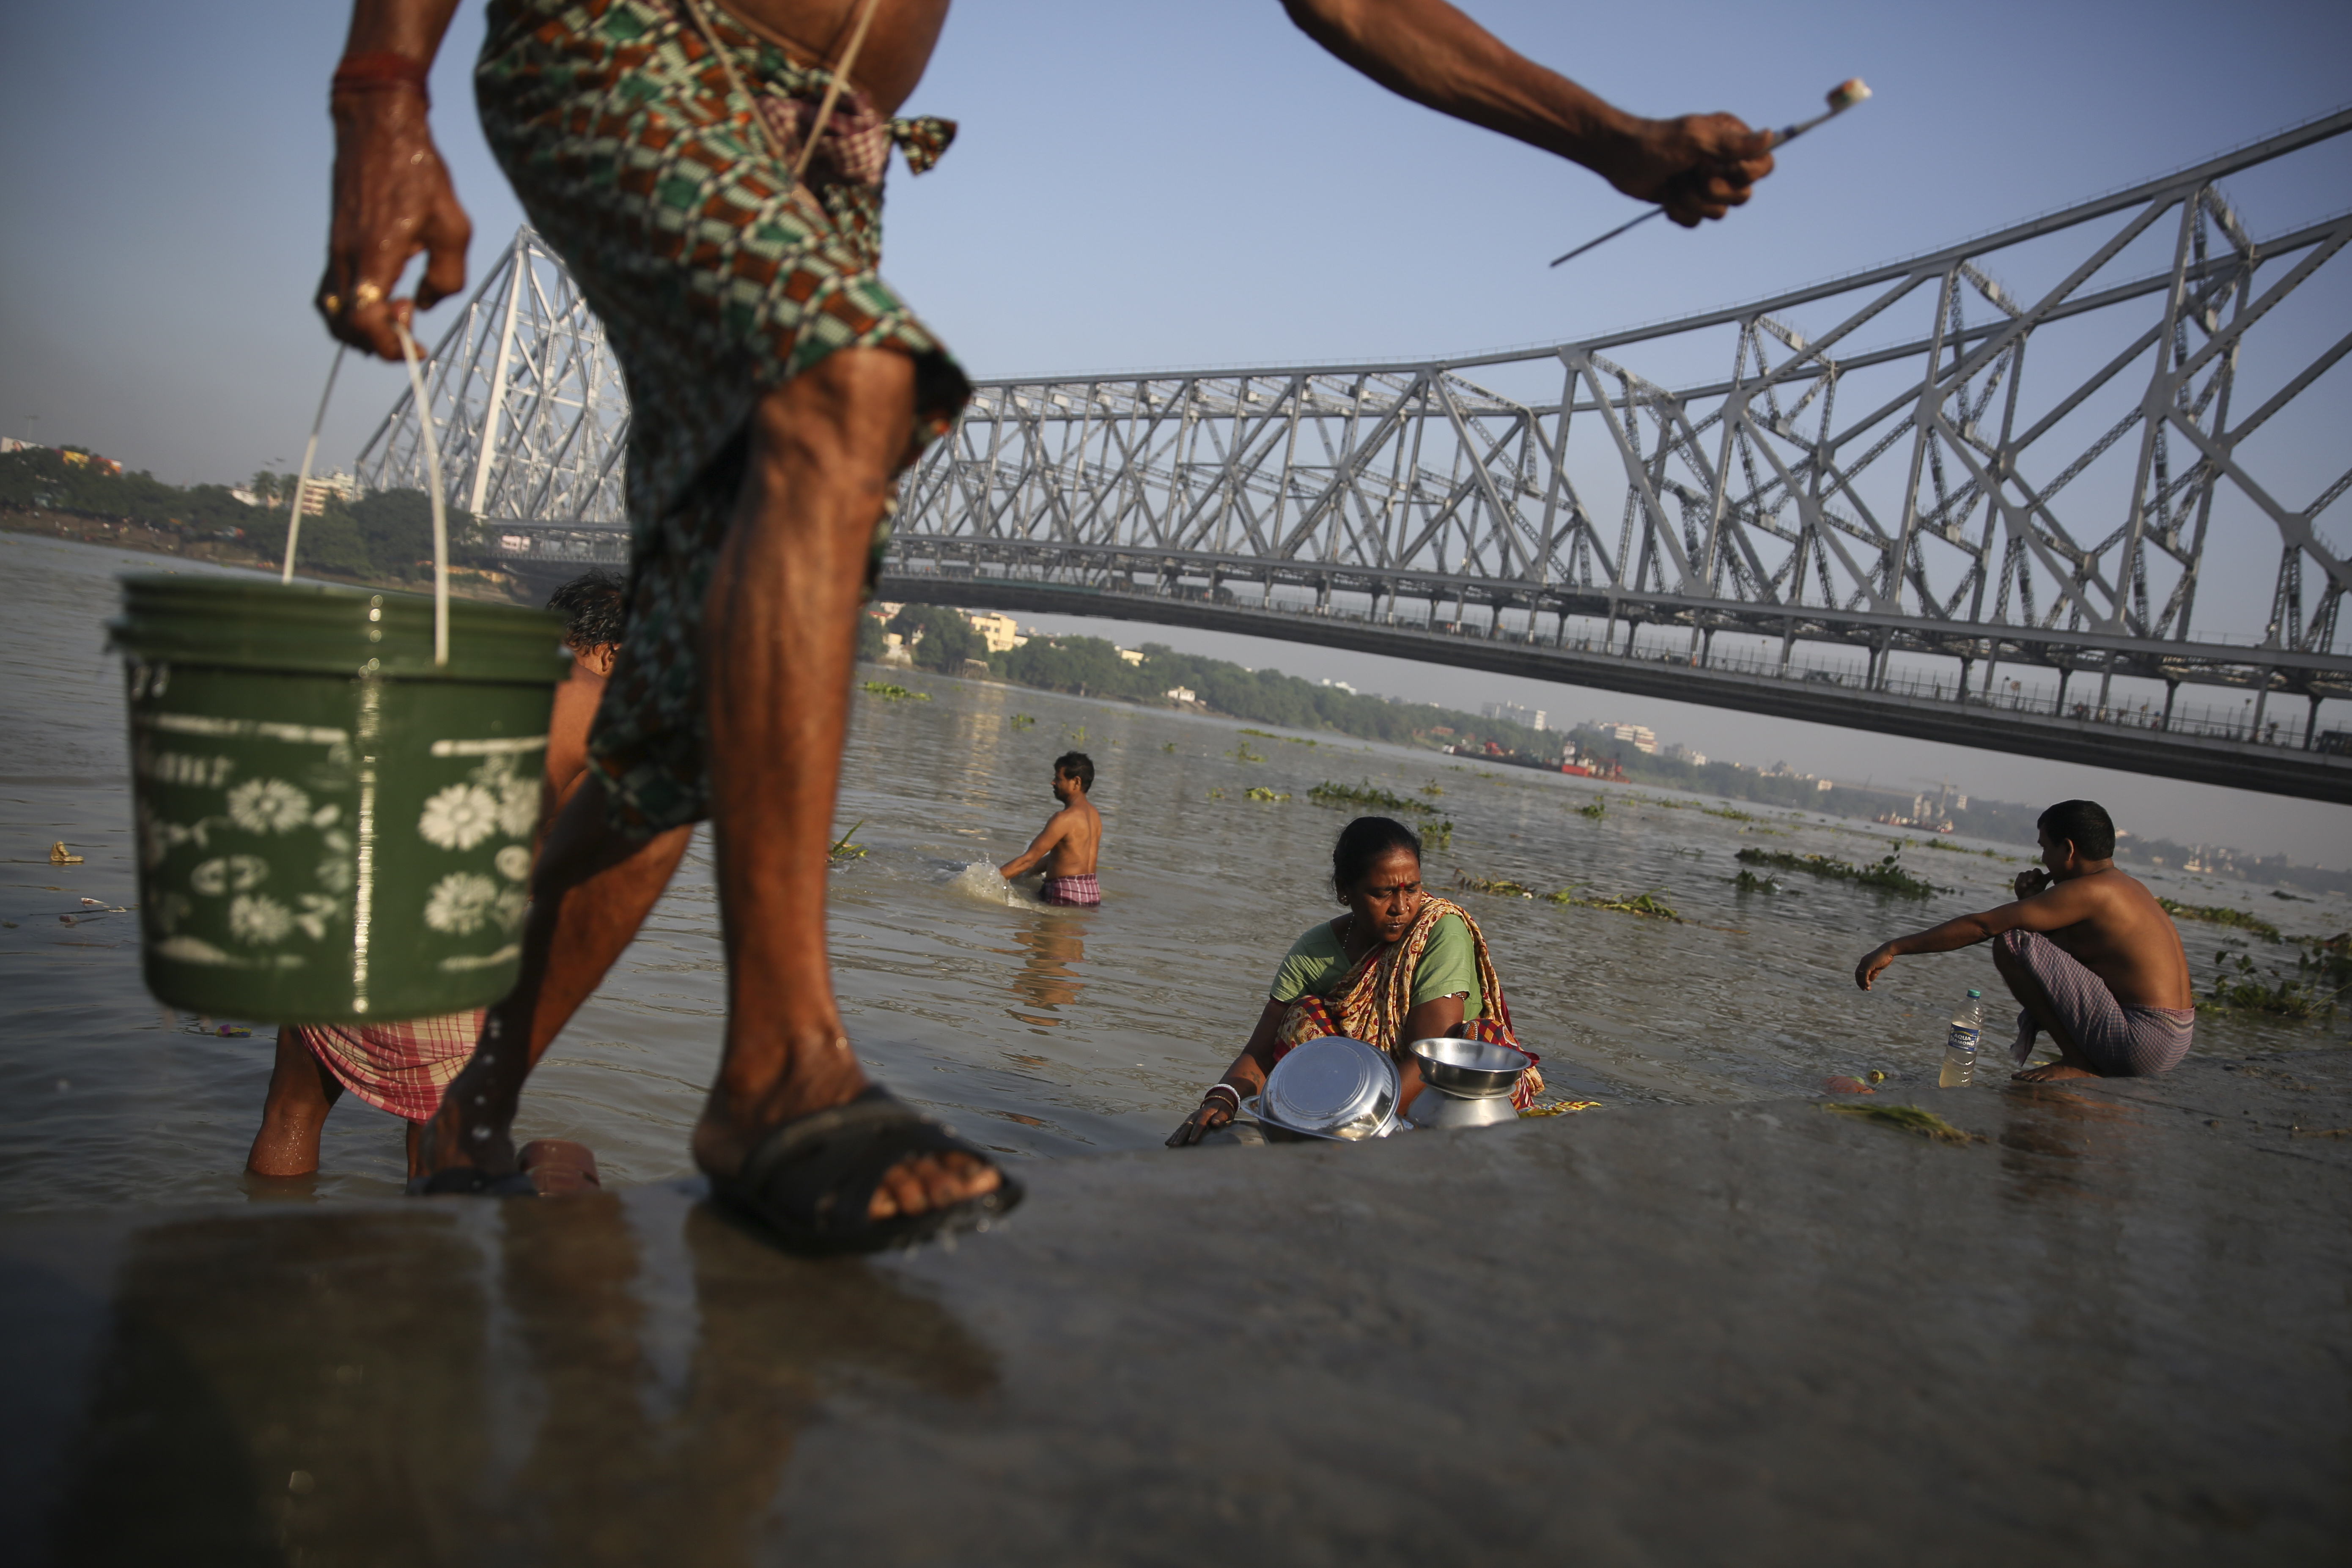 A man carries a bucket of water while people wash utensils, brush their teeth and bathe in the polluted waters of the river Hooghly, a distributary of the river Ganges and known as Ganga by locals, in the backdrop of the landmark Howrah Bridge in Kolkata, in the eastern Indian state of West Bengal, Friday, October 11, 2019. Once the capital of the British raj, today the seething metropolis is home to nearly 15 million people. Photo: AP